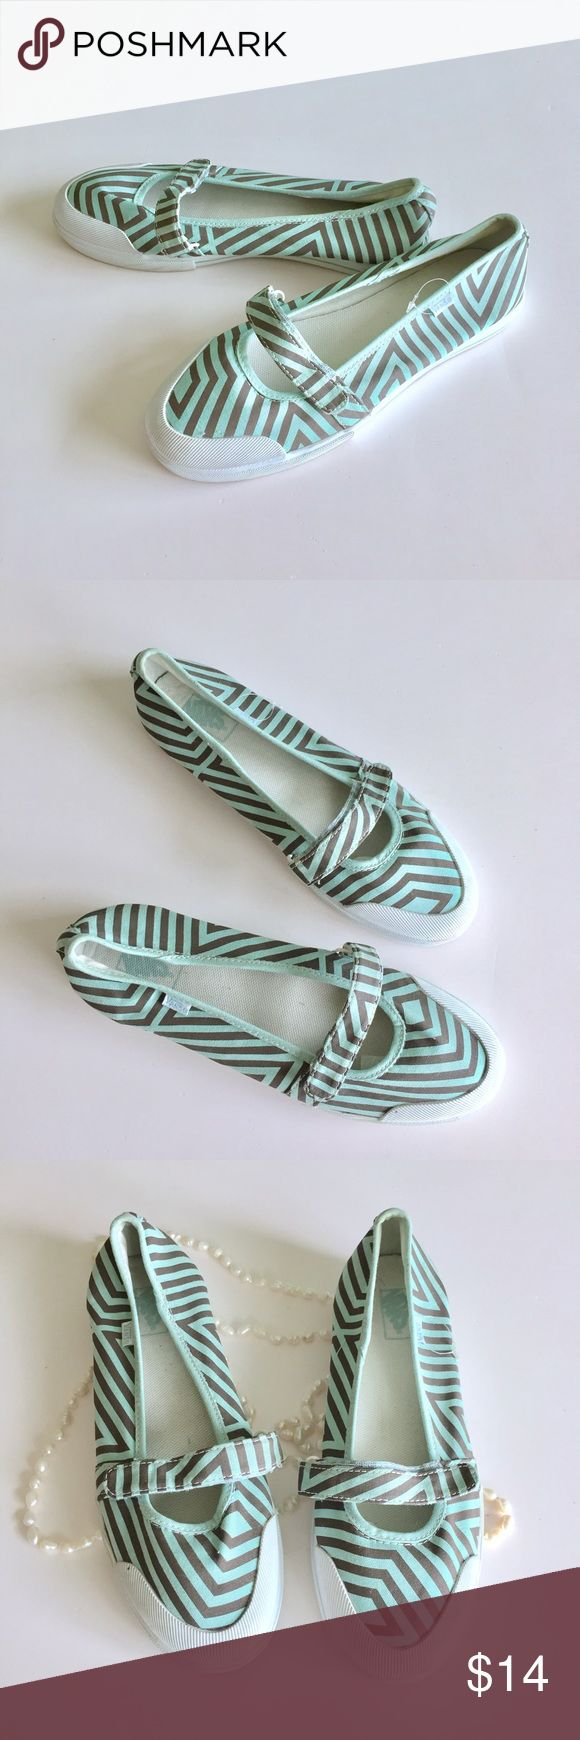 VANS Ballerina Flats Beautiful flats by Vans, worn one time. In mint condition. Size 8.5    Check out my closet bundle and give me your offer! Vans Shoes Flats & Loafers